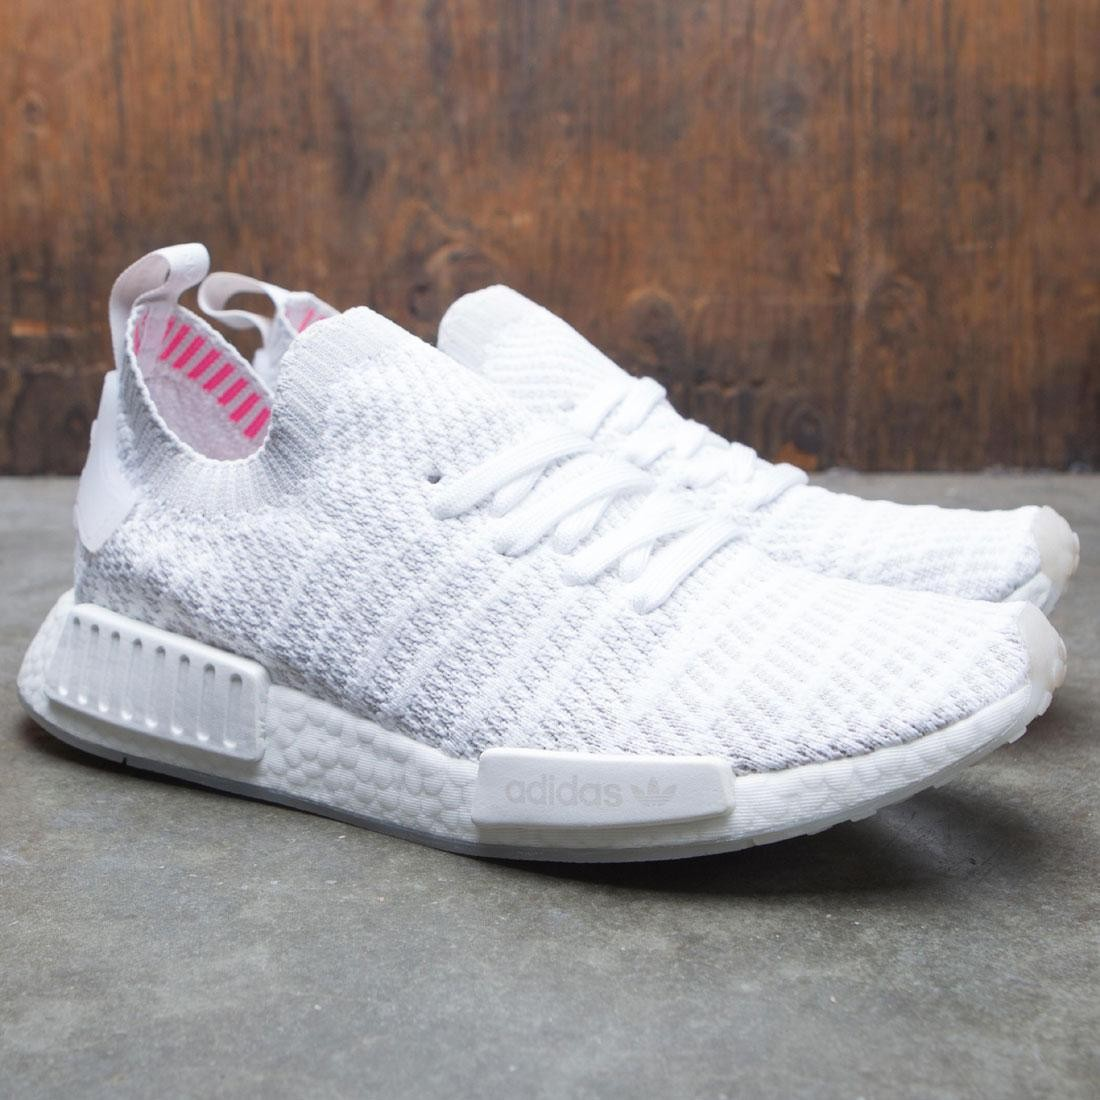 timeless design 0e34f 5e8a2 Adidas Men NMD R1 STLT Primeknit (white / grey one / solar pink)